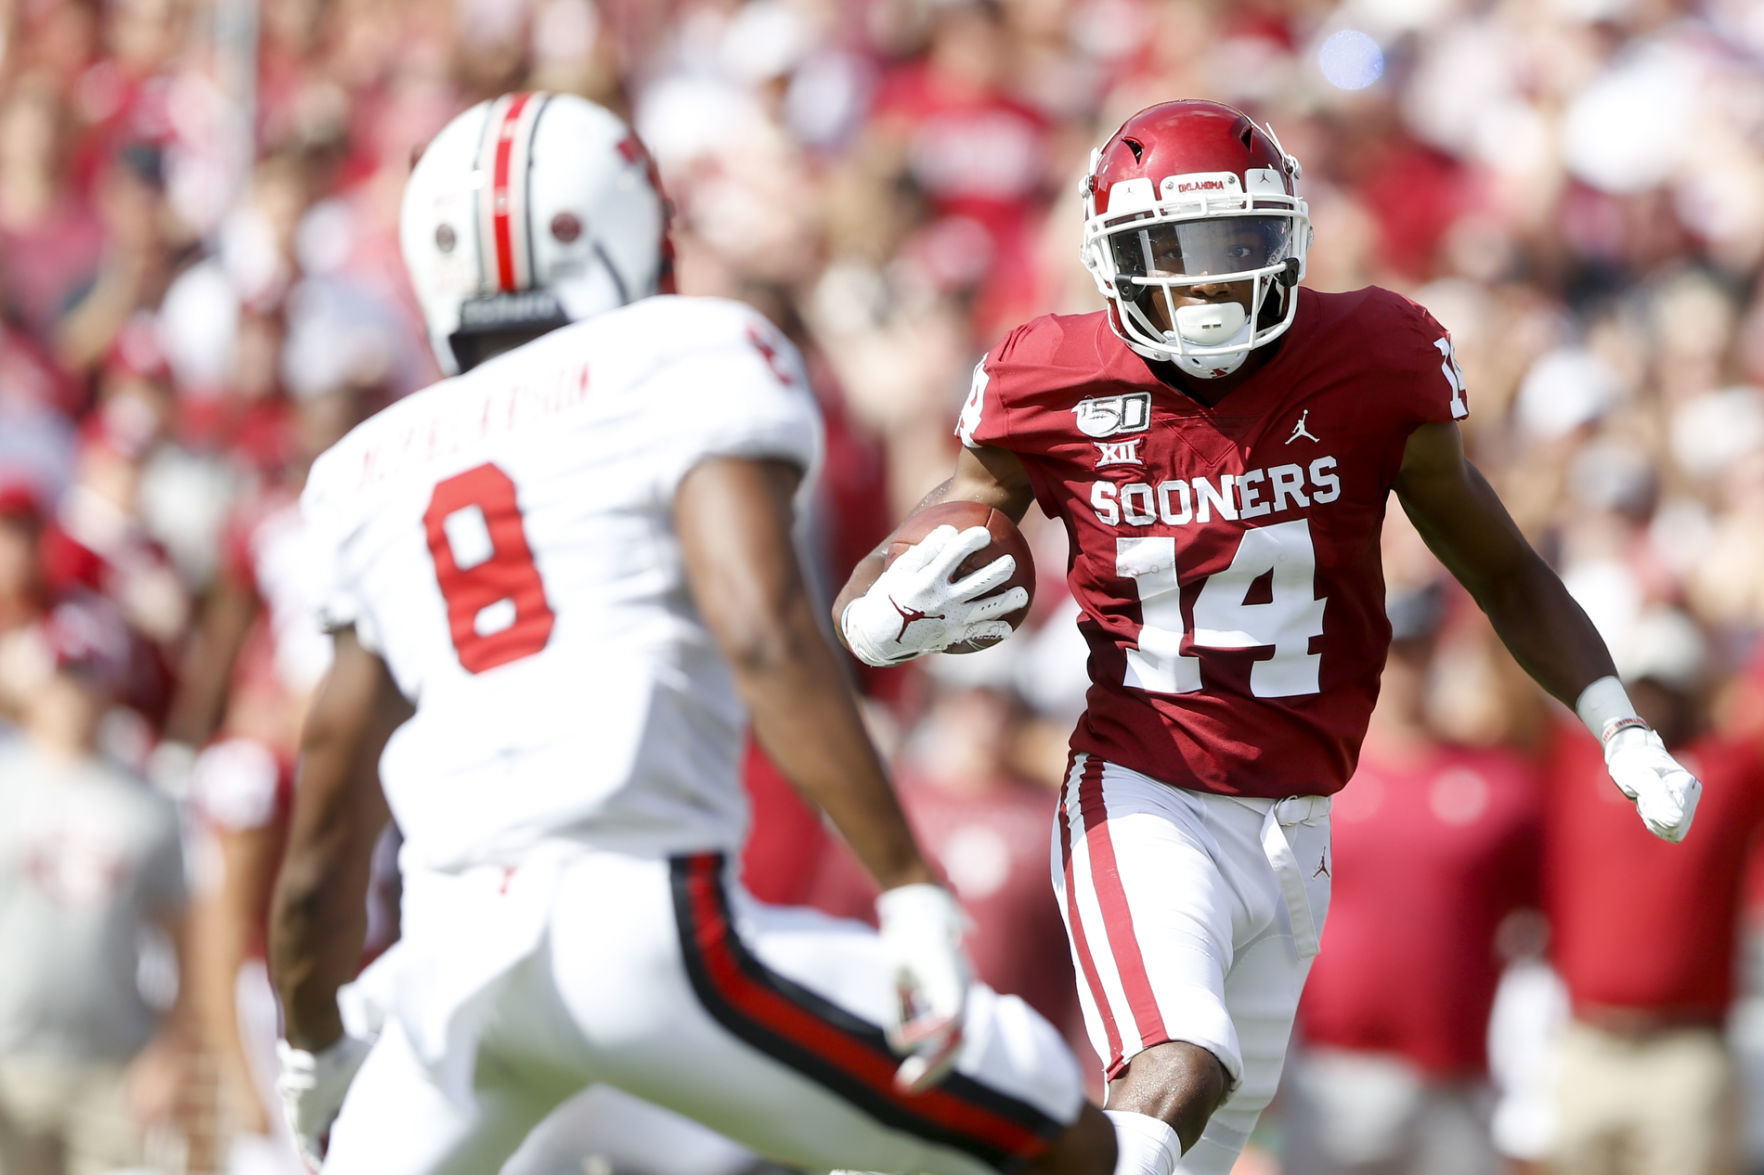 OU football: Sooners have second consecutive week without ...